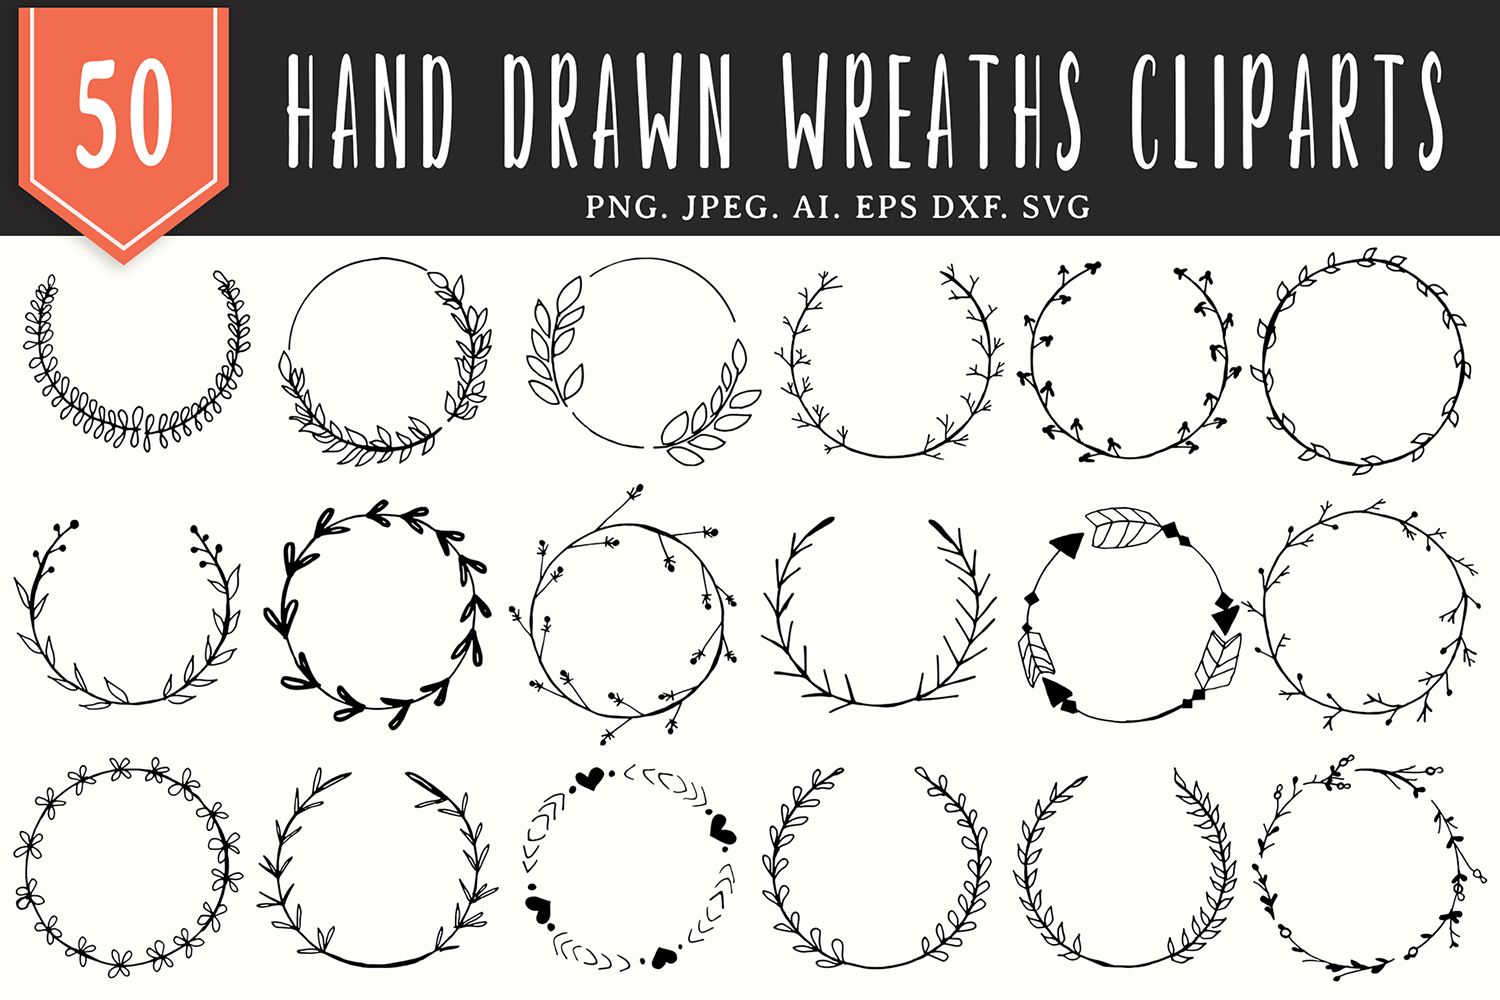 Download Free 50 Handmade Wreaths Cliparts Graphic By Creative Tacos for Cricut Explore, Silhouette and other cutting machines.